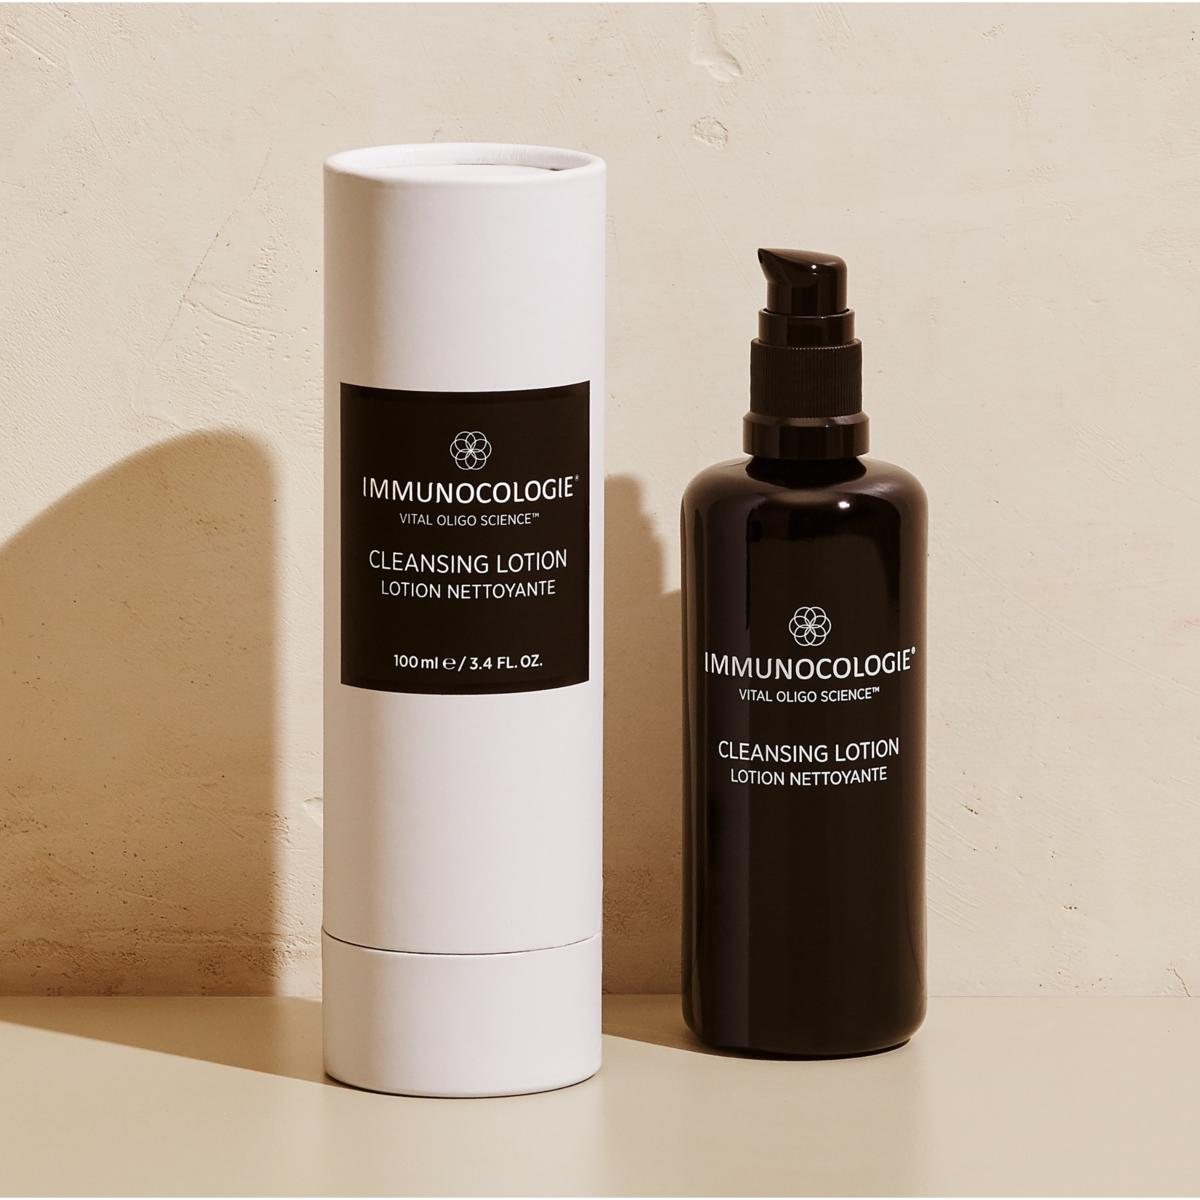 Cleansing Lotion | Immunocologie